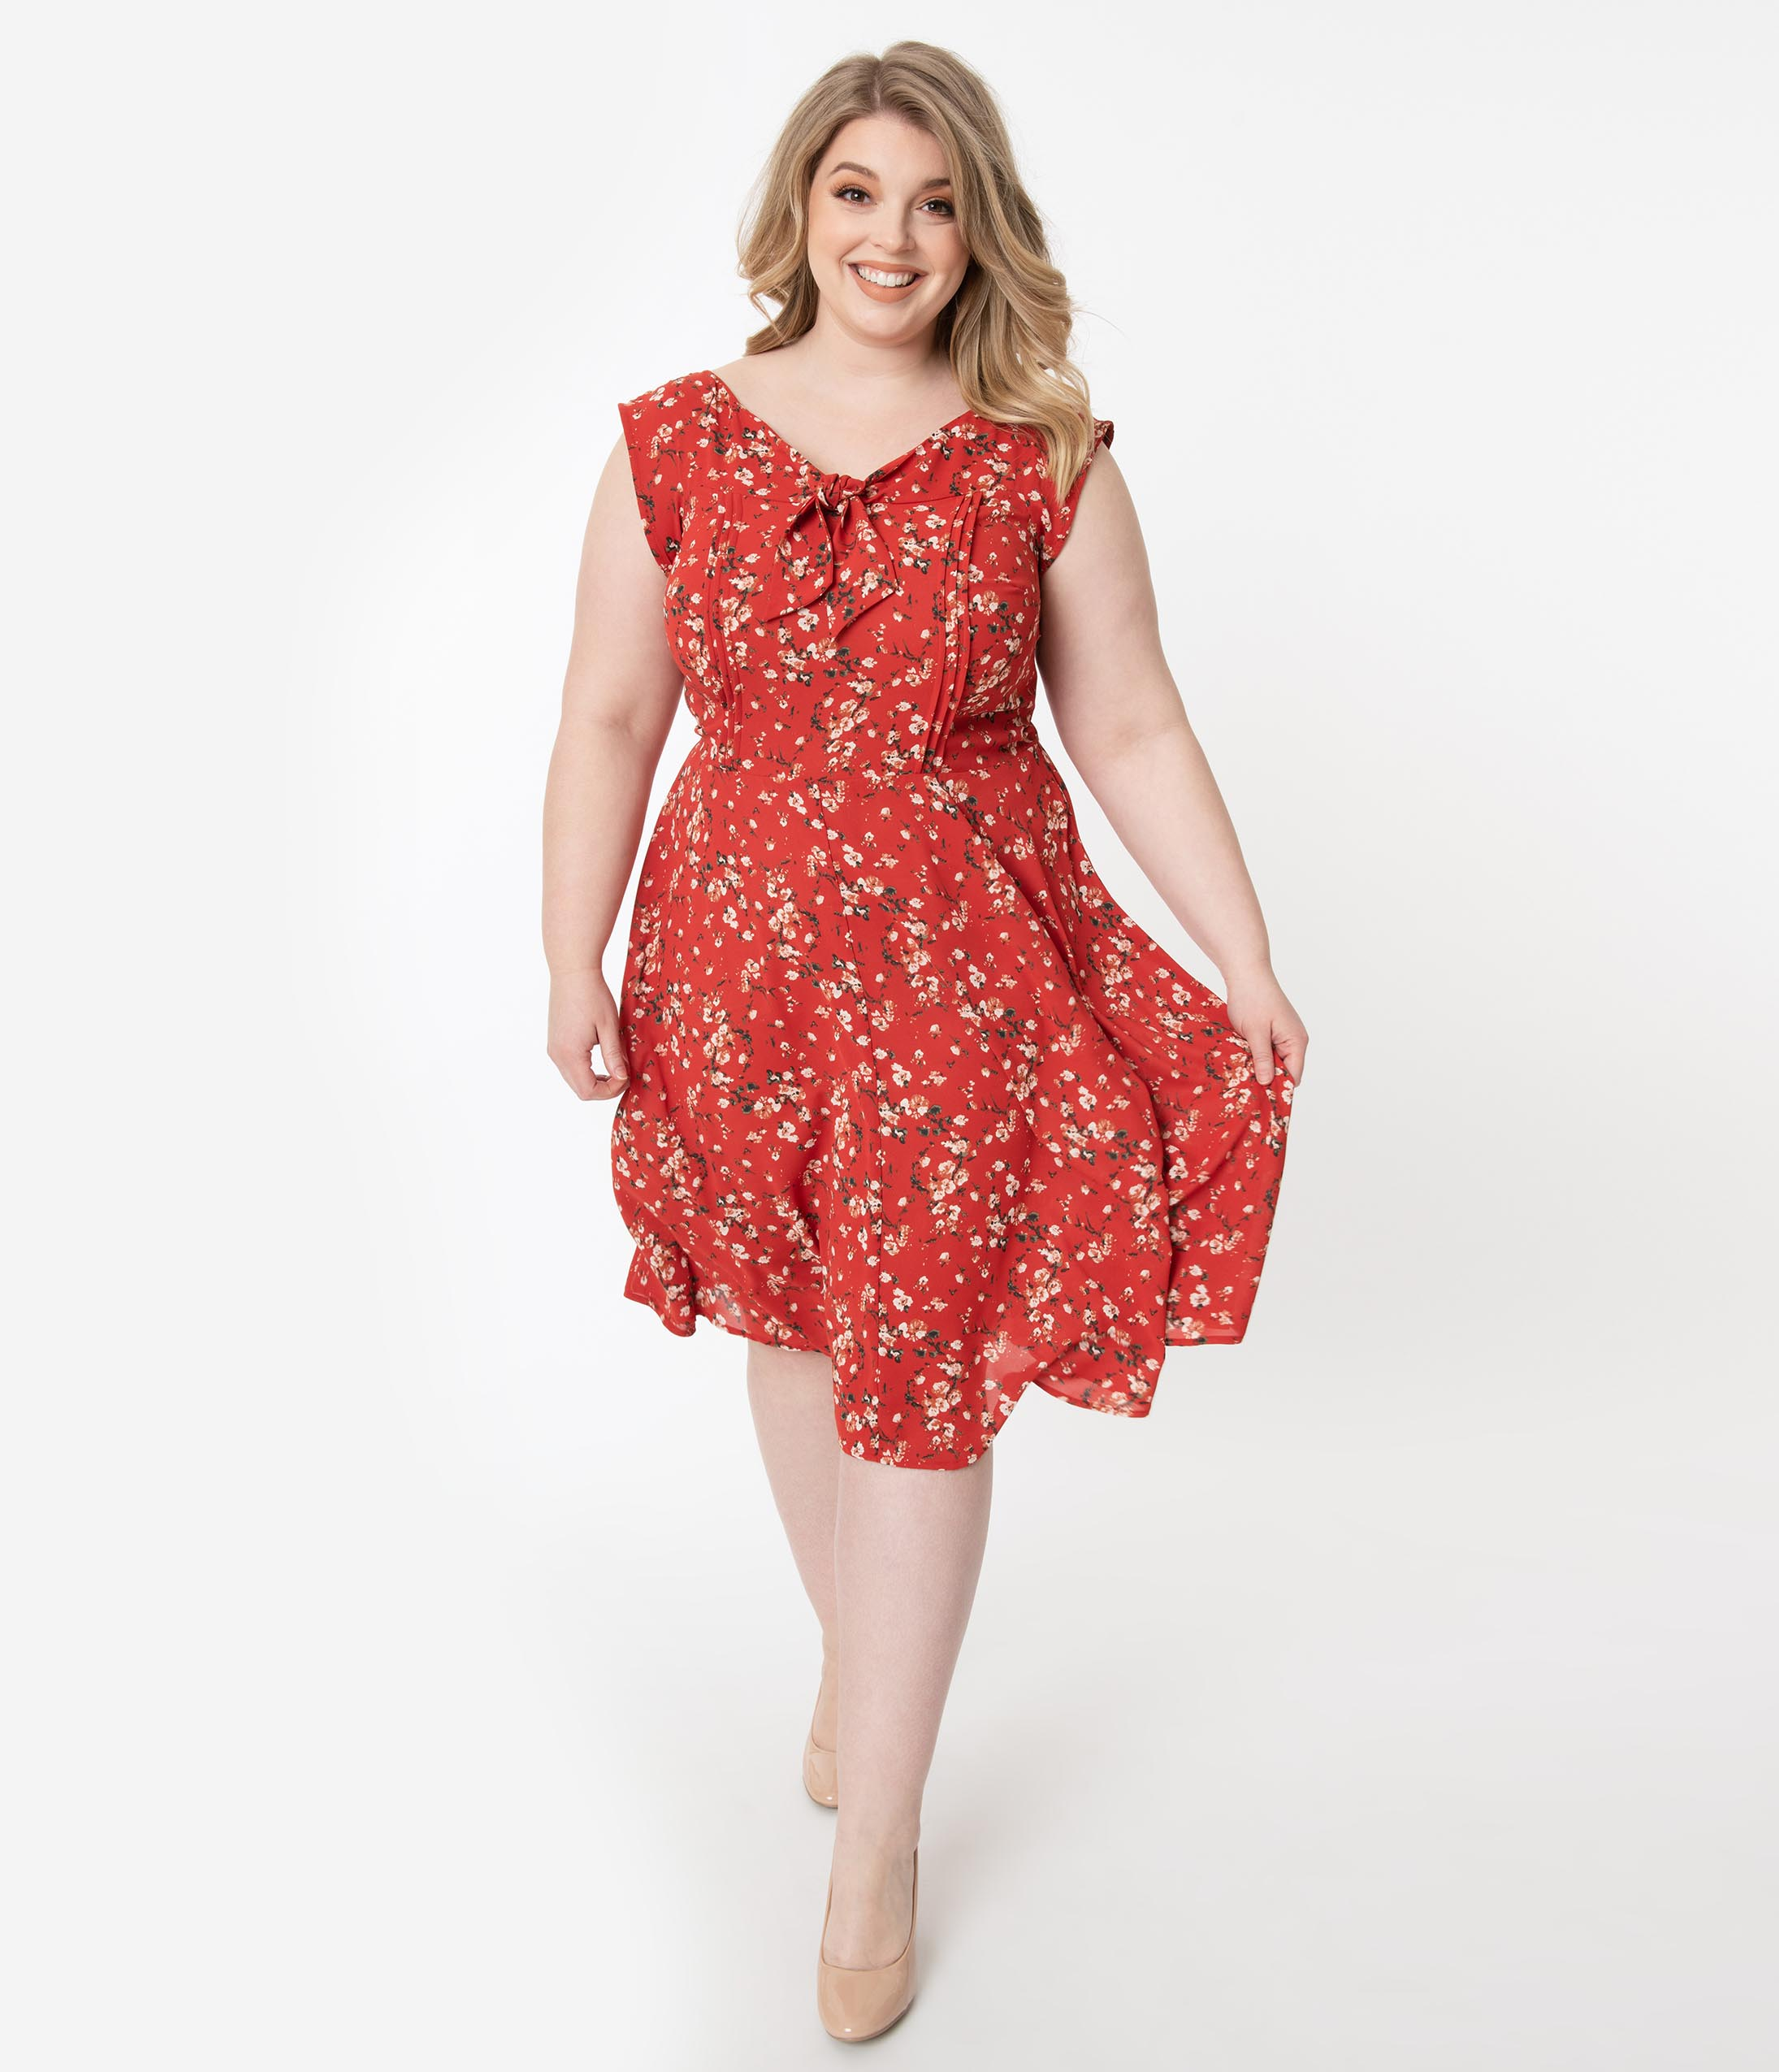 1940s Dresses | 40s Dress, Swing Dress Unique Vintage Plus Size 1940S Style Red Floral Print Havilland Dress $88.00 AT vintagedancer.com